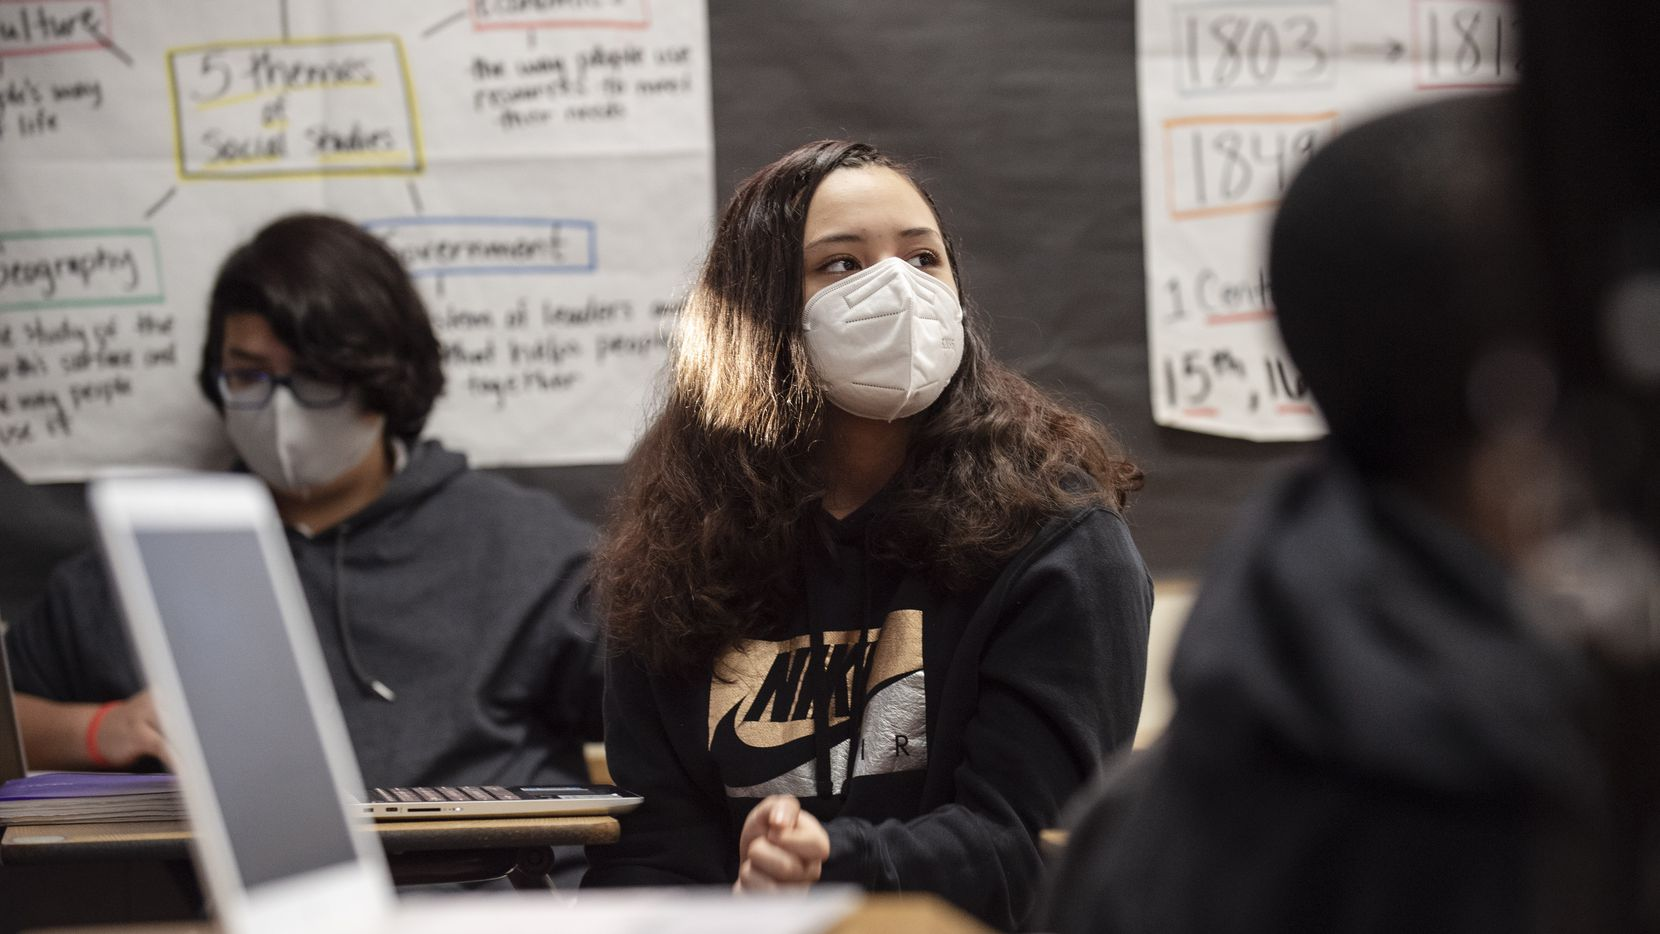 Eighth grader Yarettzi Chavez wears a face mask as she participates during a class discussion on the Presidential candidates and the election, on Wednesday, Nov. 04, 2020 at Permenter Middle School in Cedar Hill.